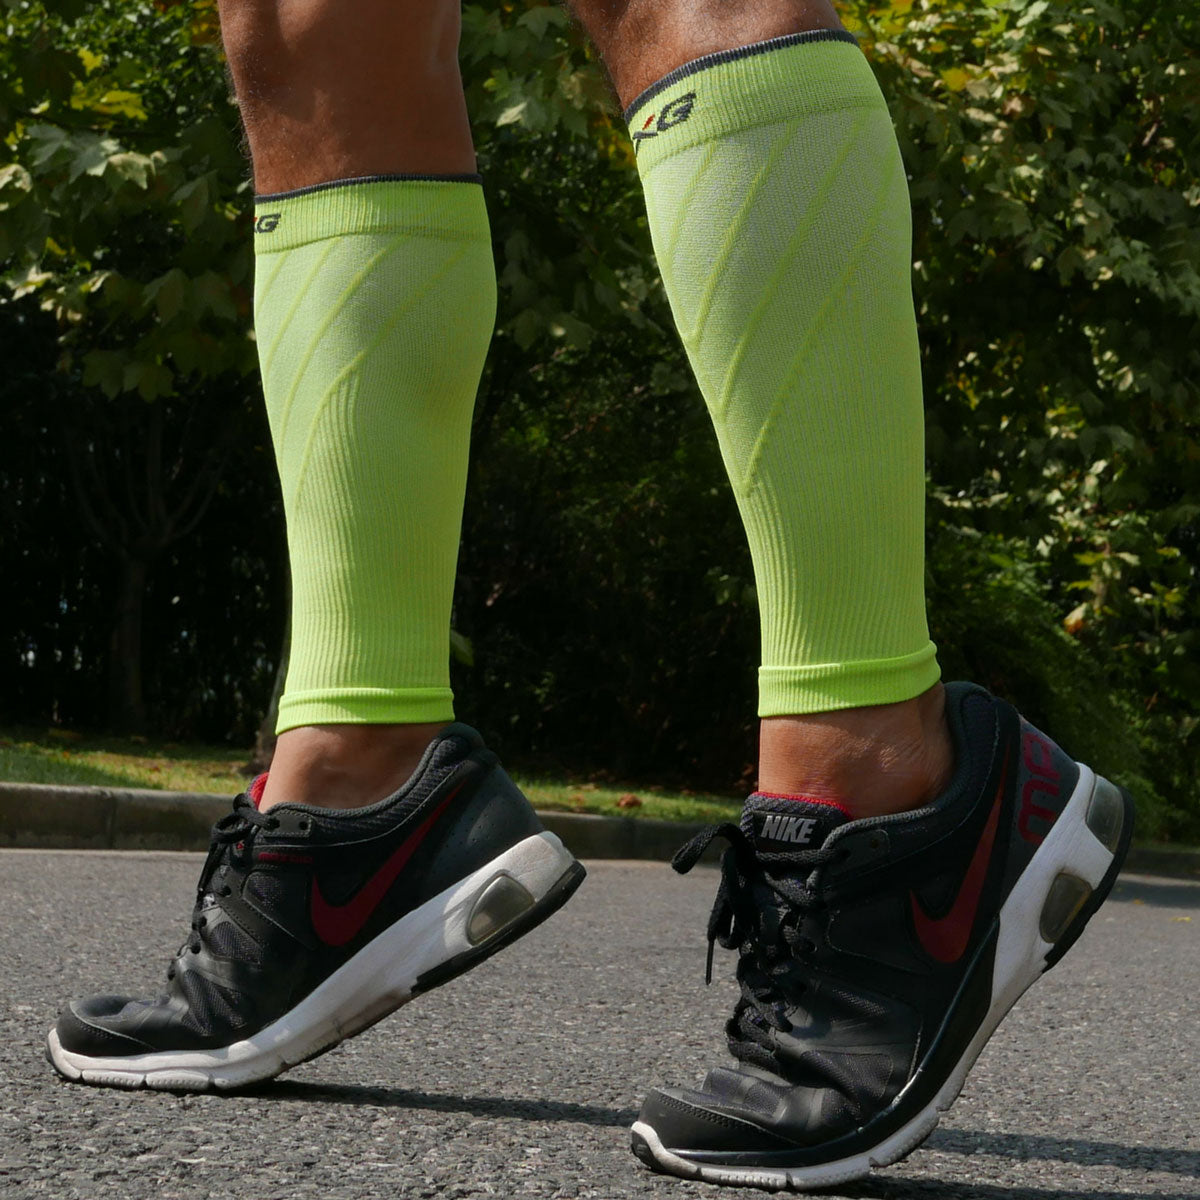 6aa6e540a ... Male runner wearing TXG calf compression sleeves in yellow ...